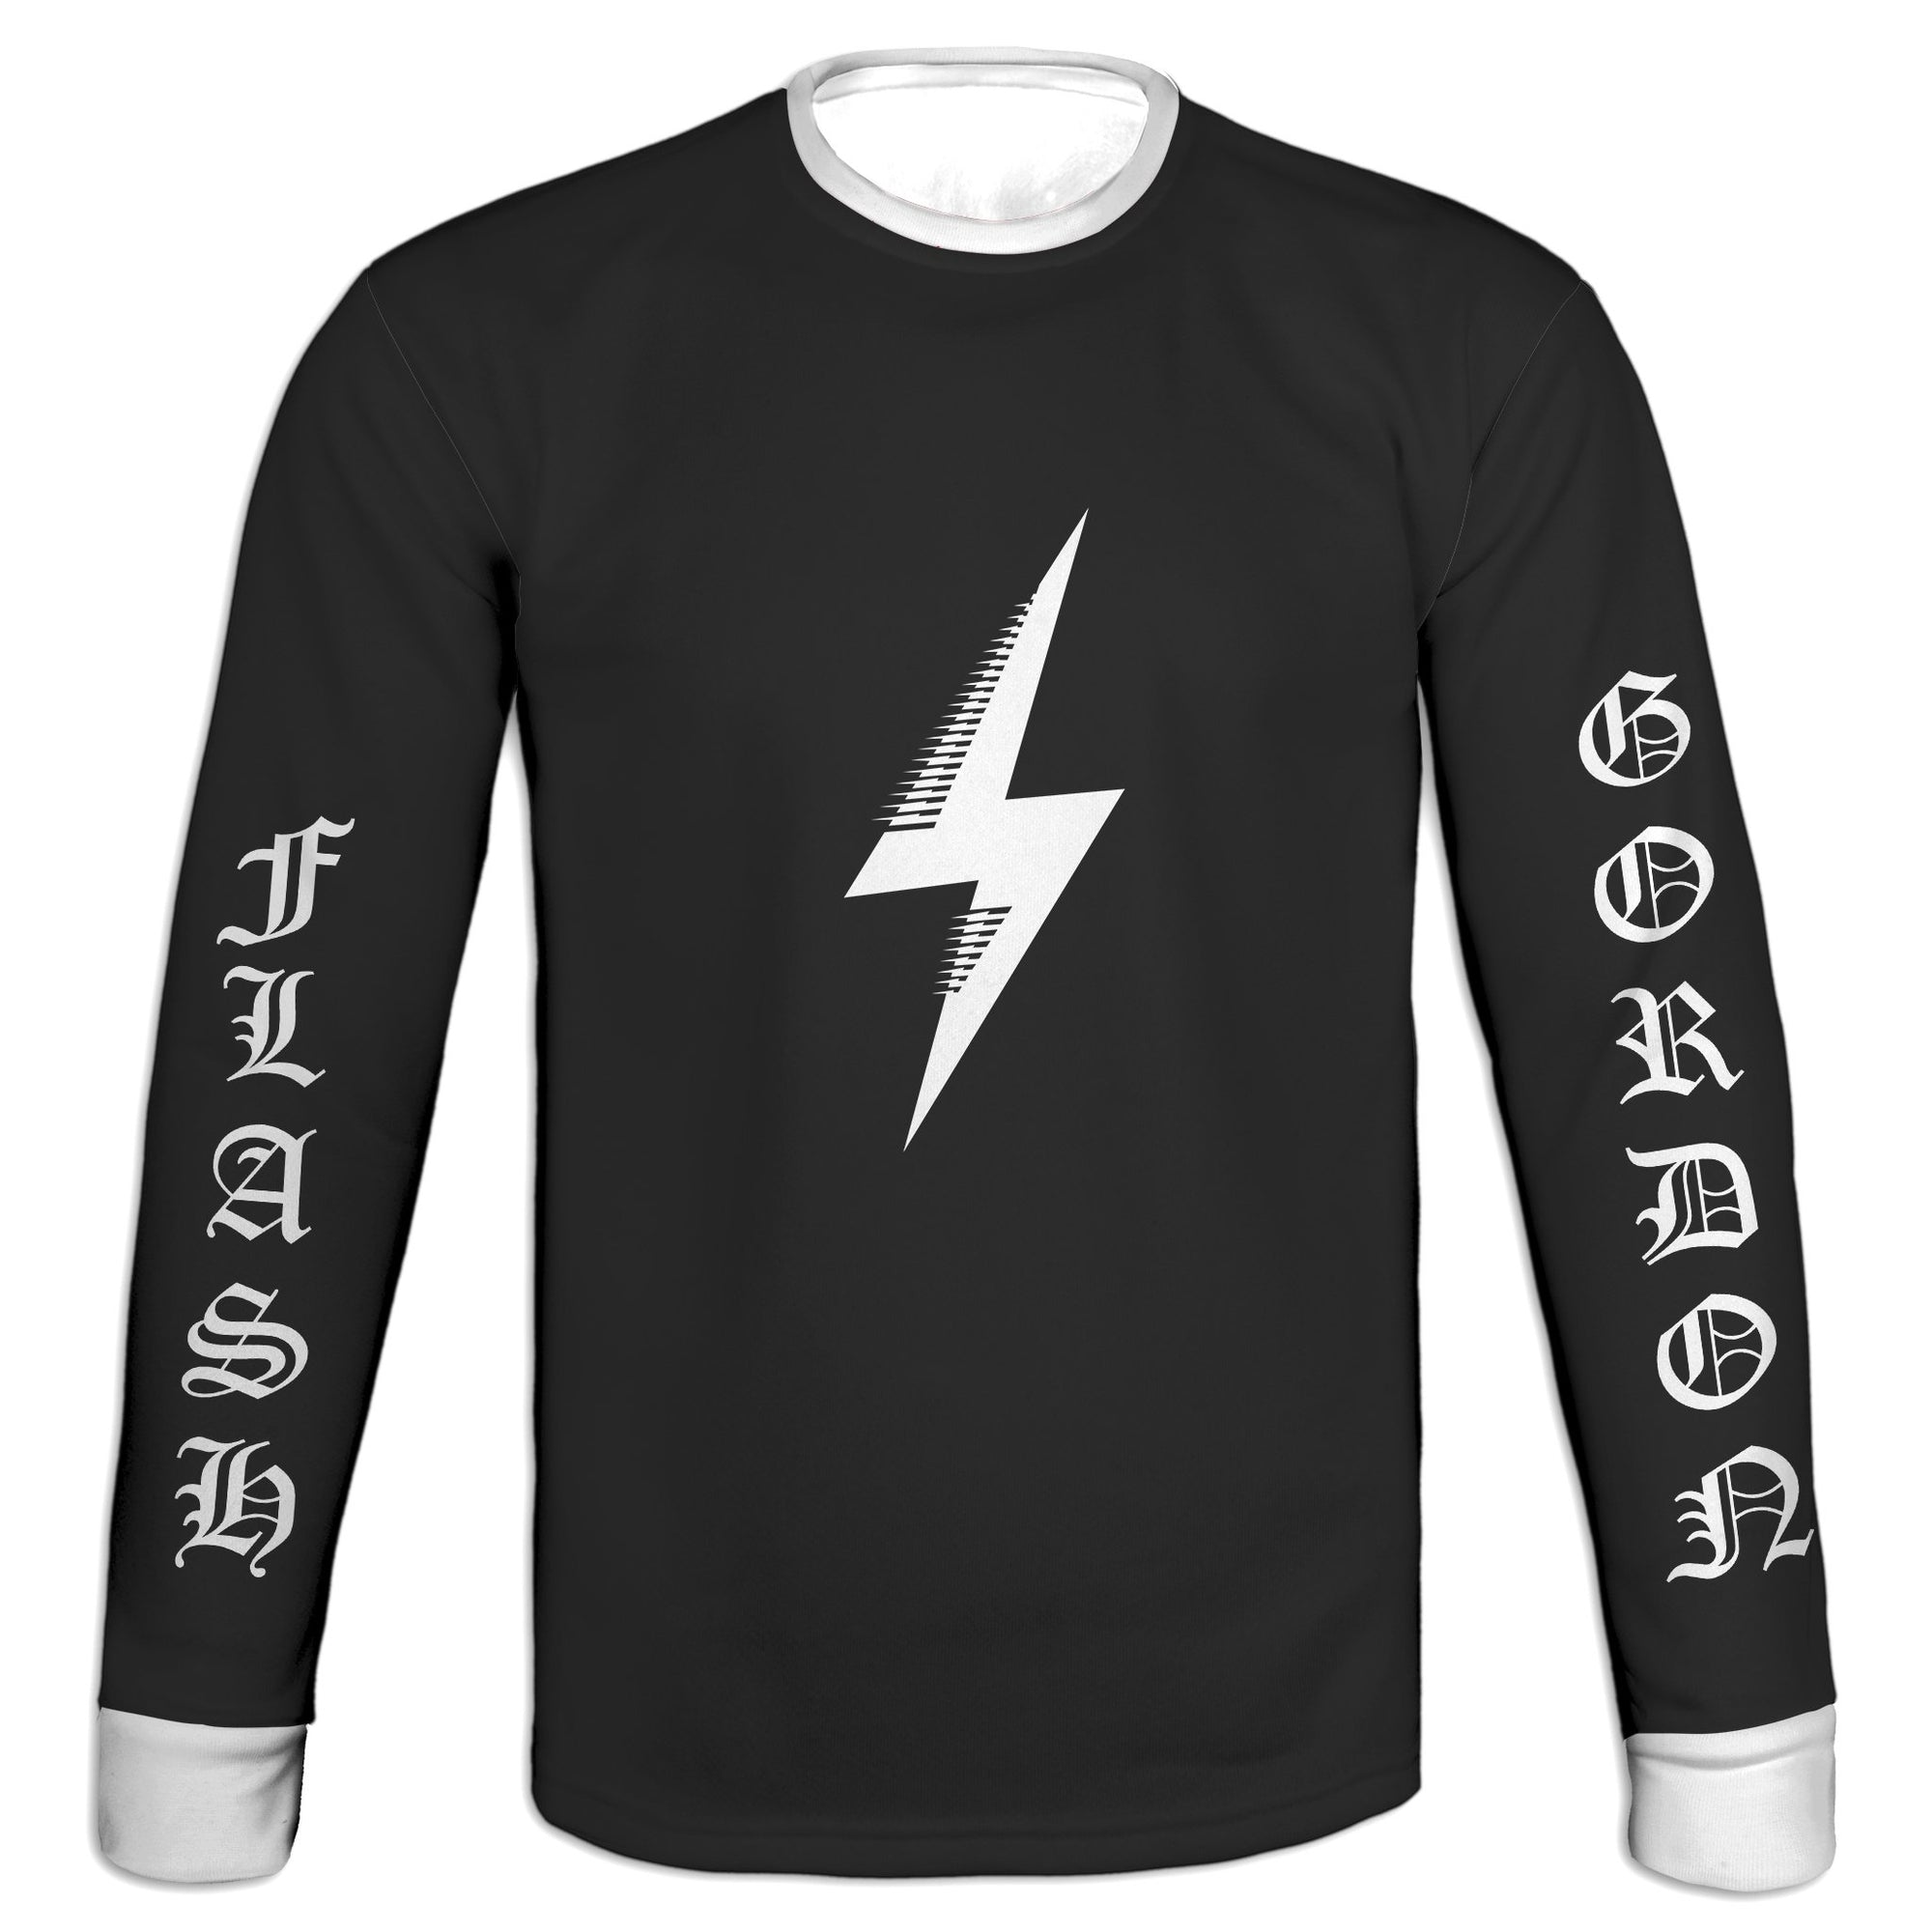 Ambition Sweatshirt | flashgordonshop.com